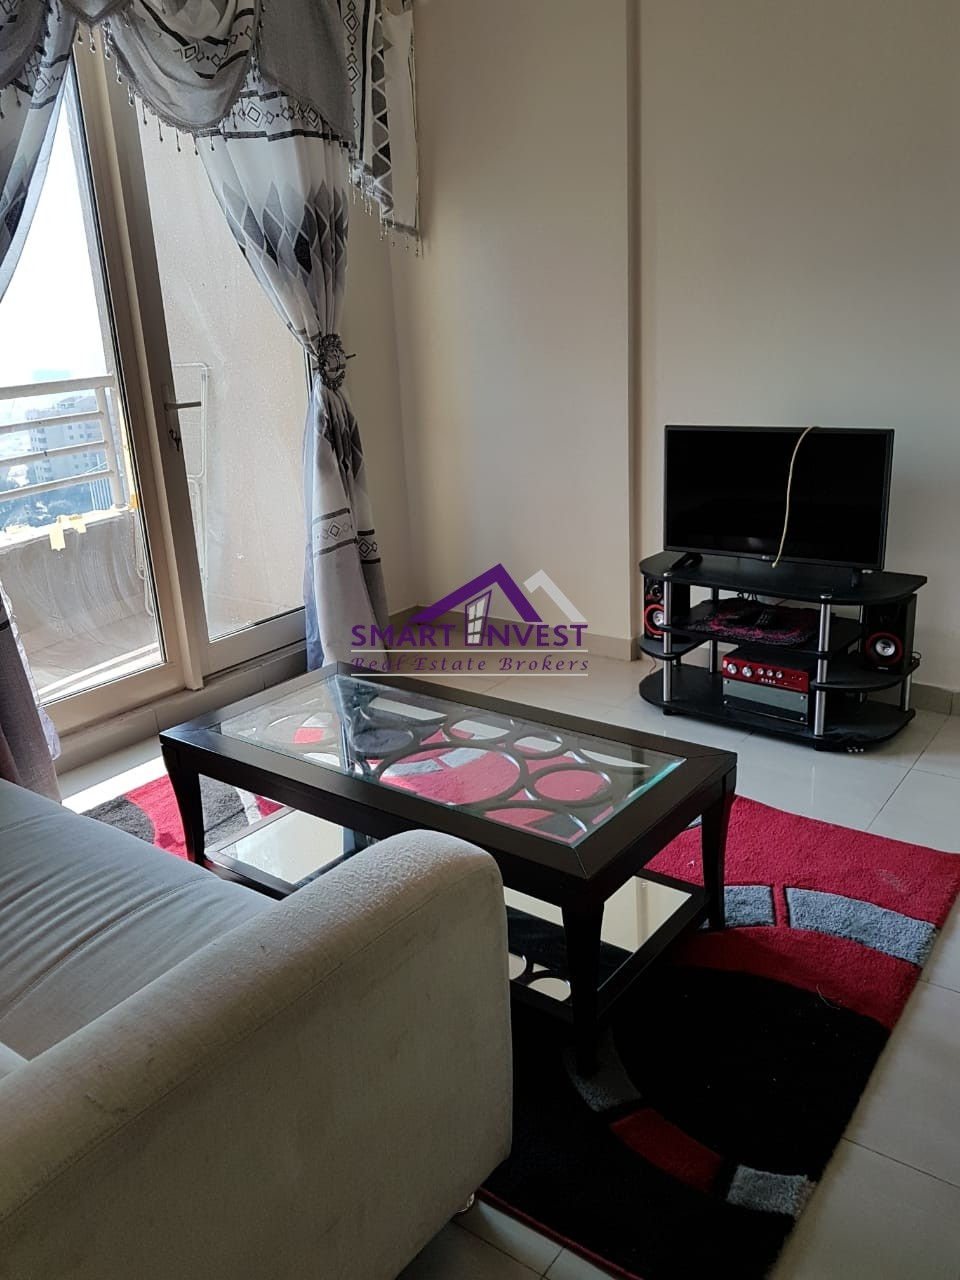 1BR Apartment for sale in Dubai Marina for AED 625,000/- Cash Buyers Only